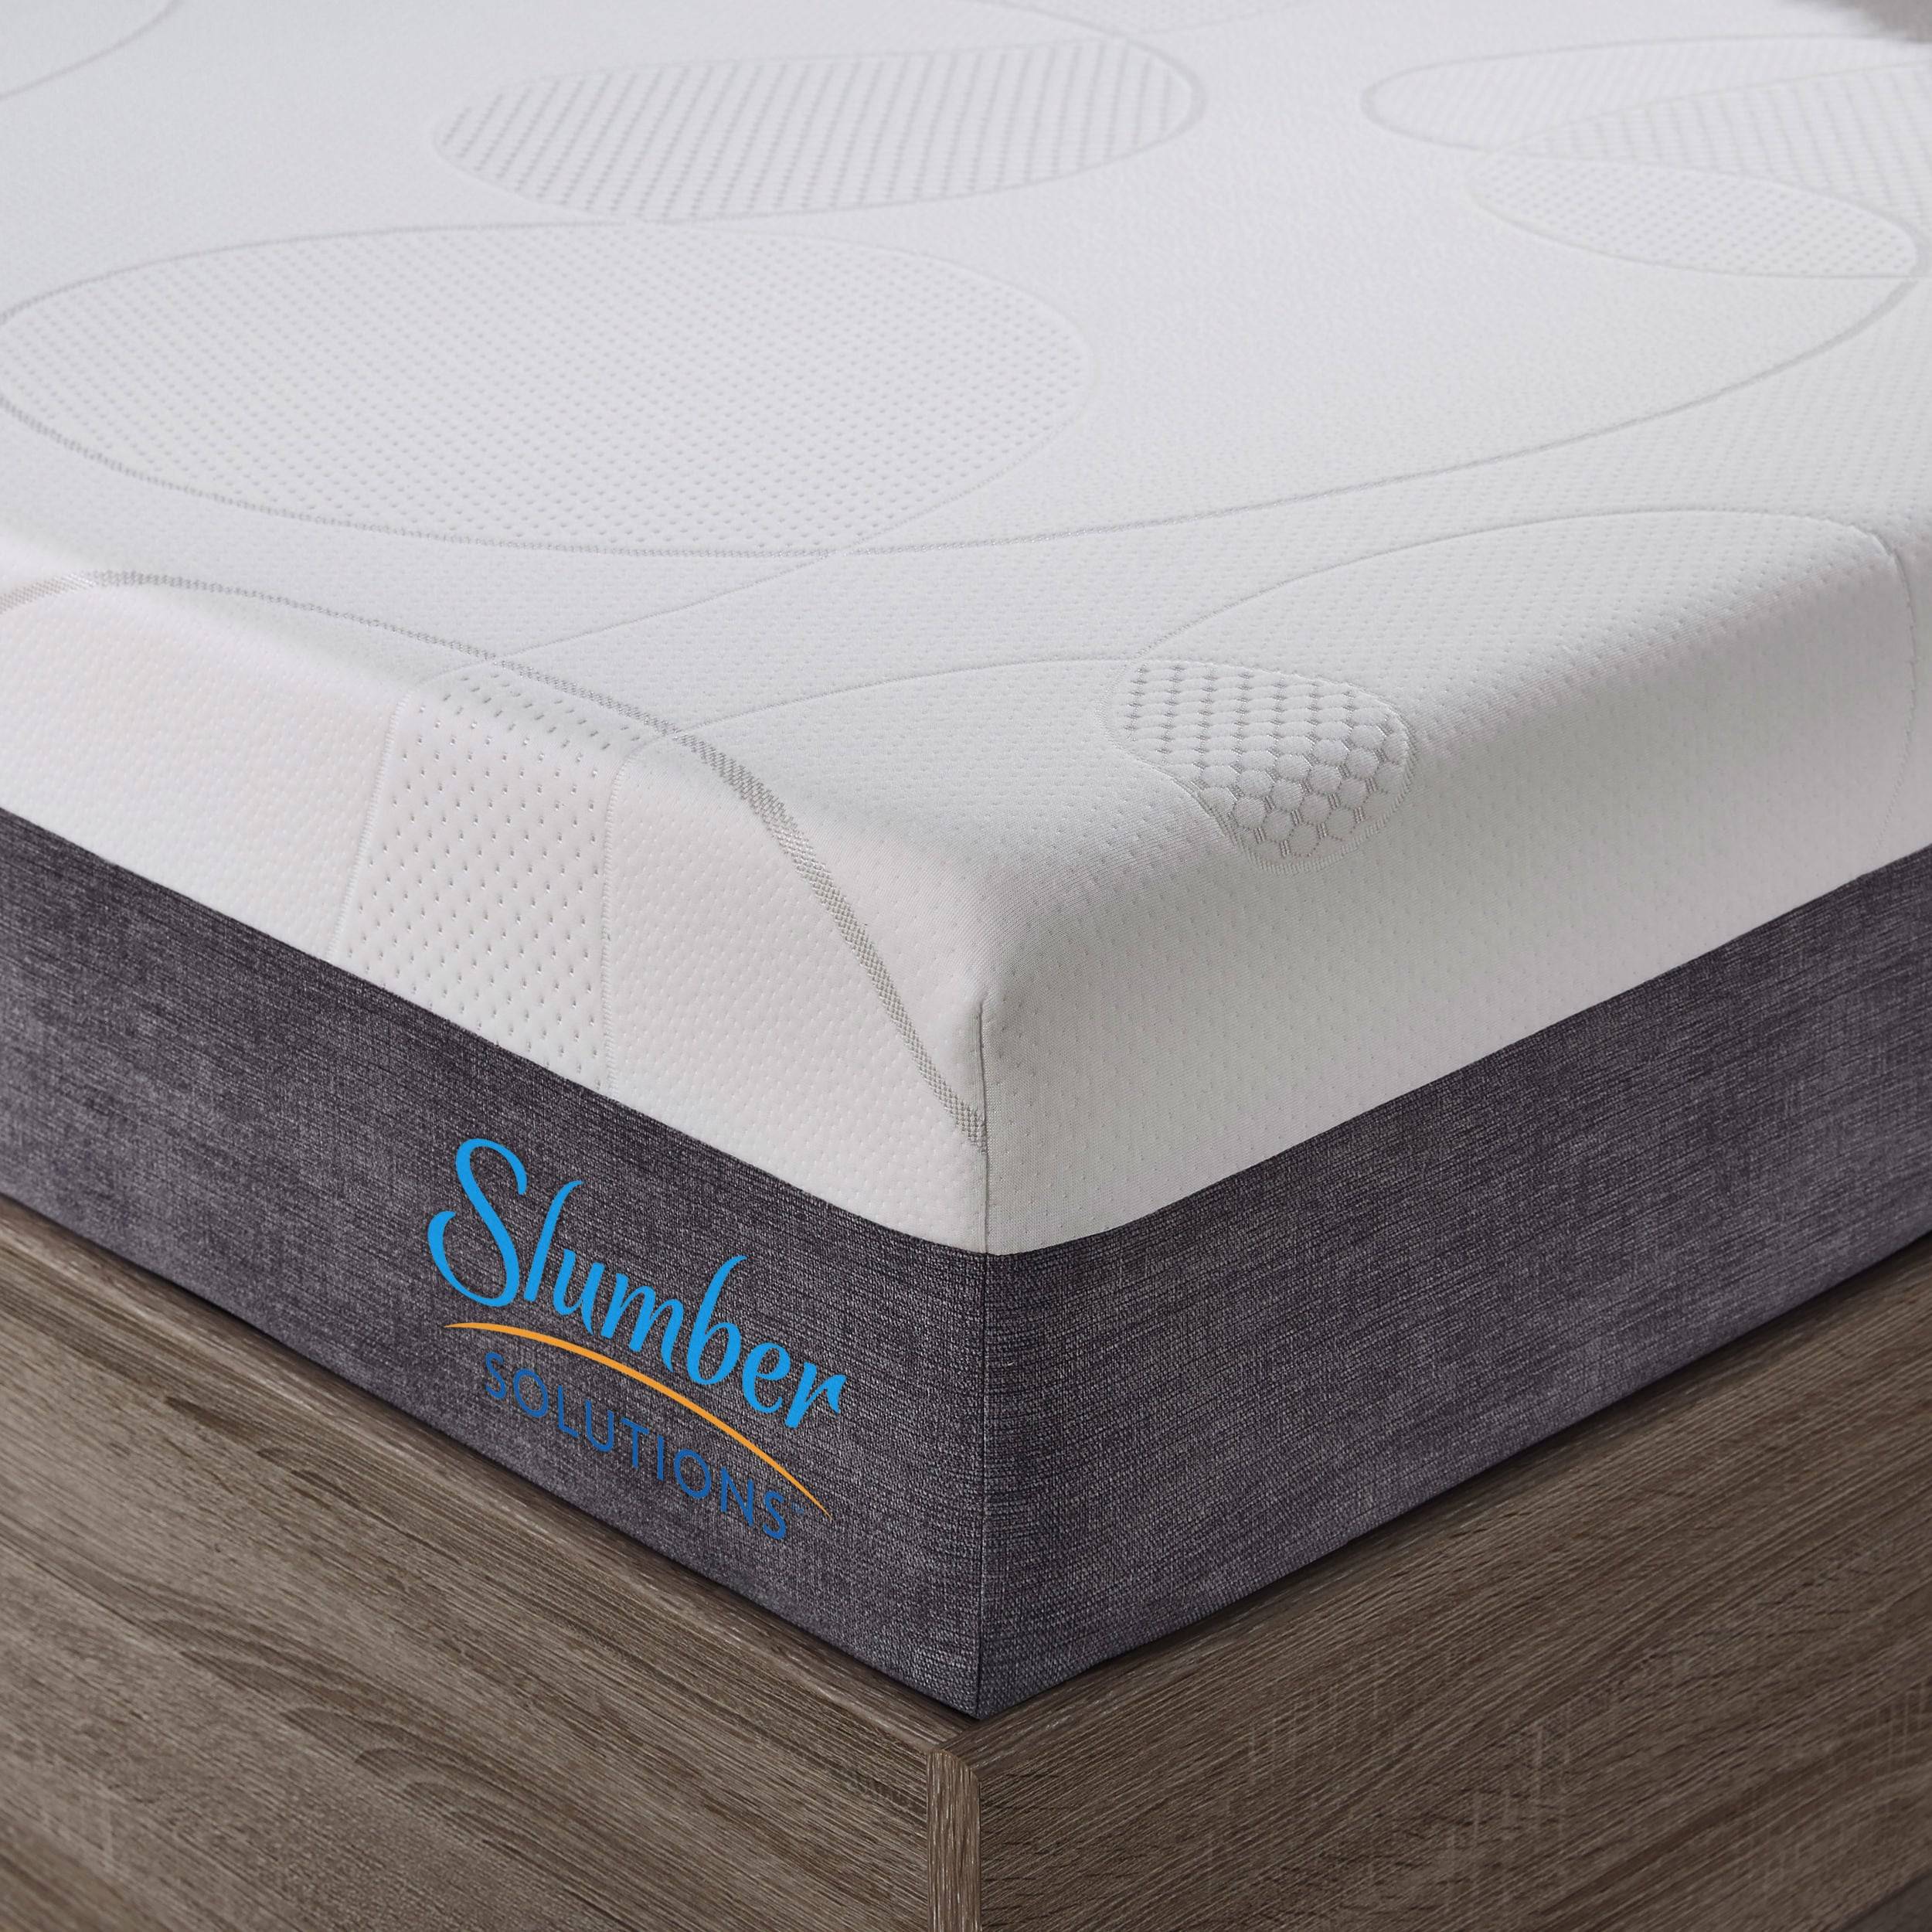 Slumber Solutions Choose Your fort 10 inch Full size Gel Memory